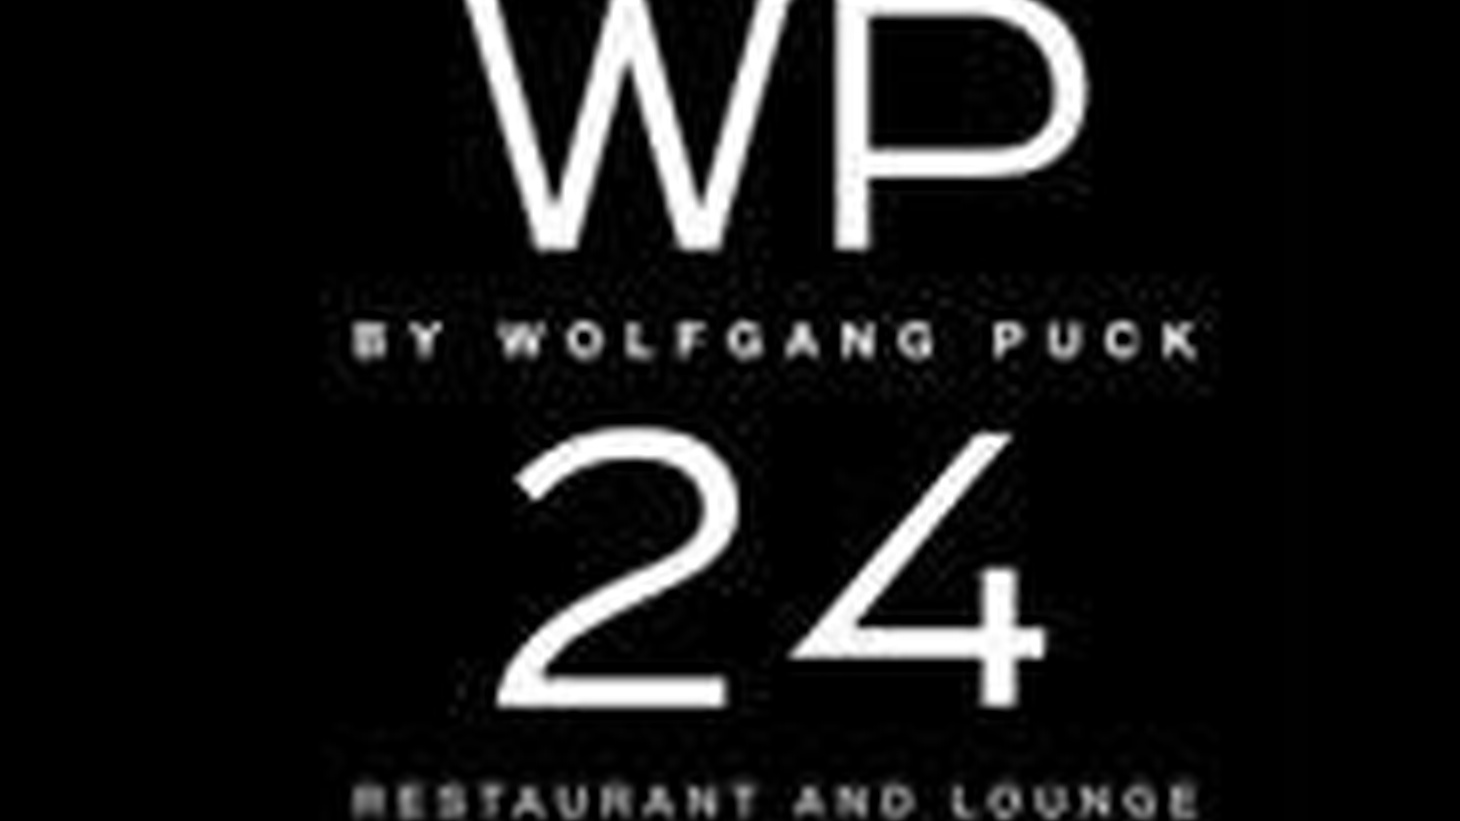 Jonathan Gold takes us to WP 24, Wolfgang Puck's new restaurant at the top of the Ritz Carlton in Downtown Los Angeles.